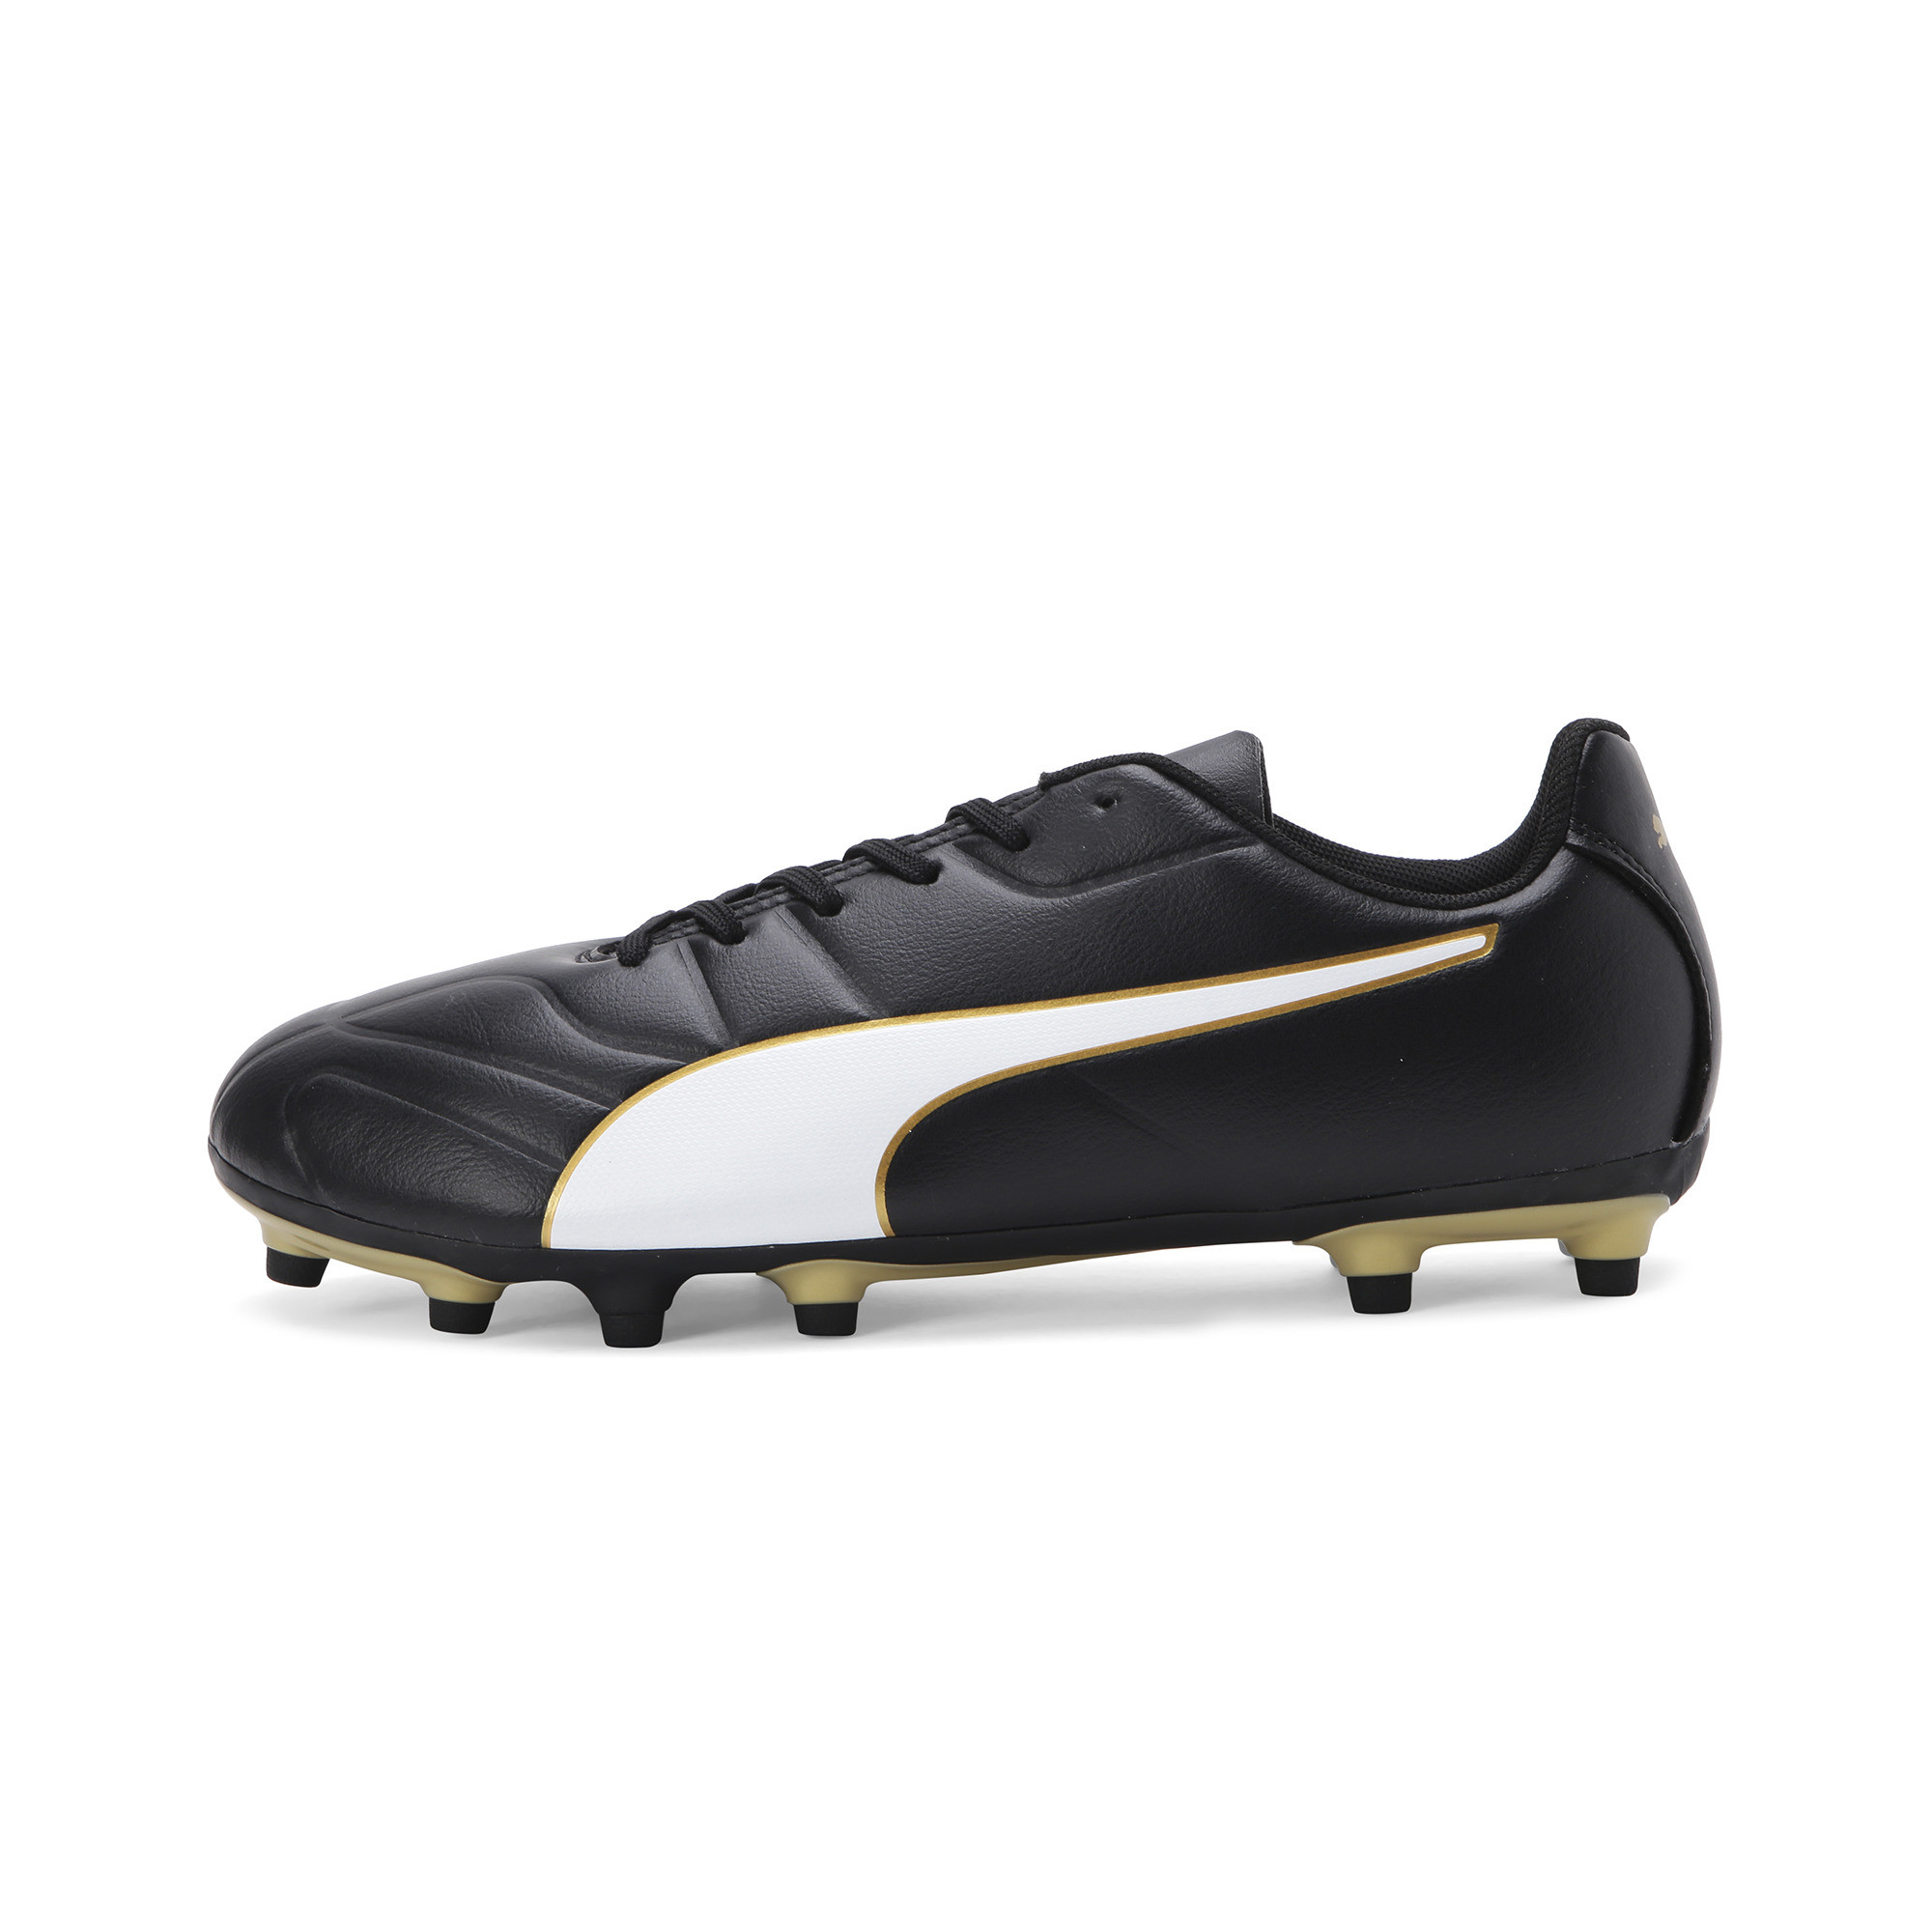 Classico C II FG Men's Football Boots